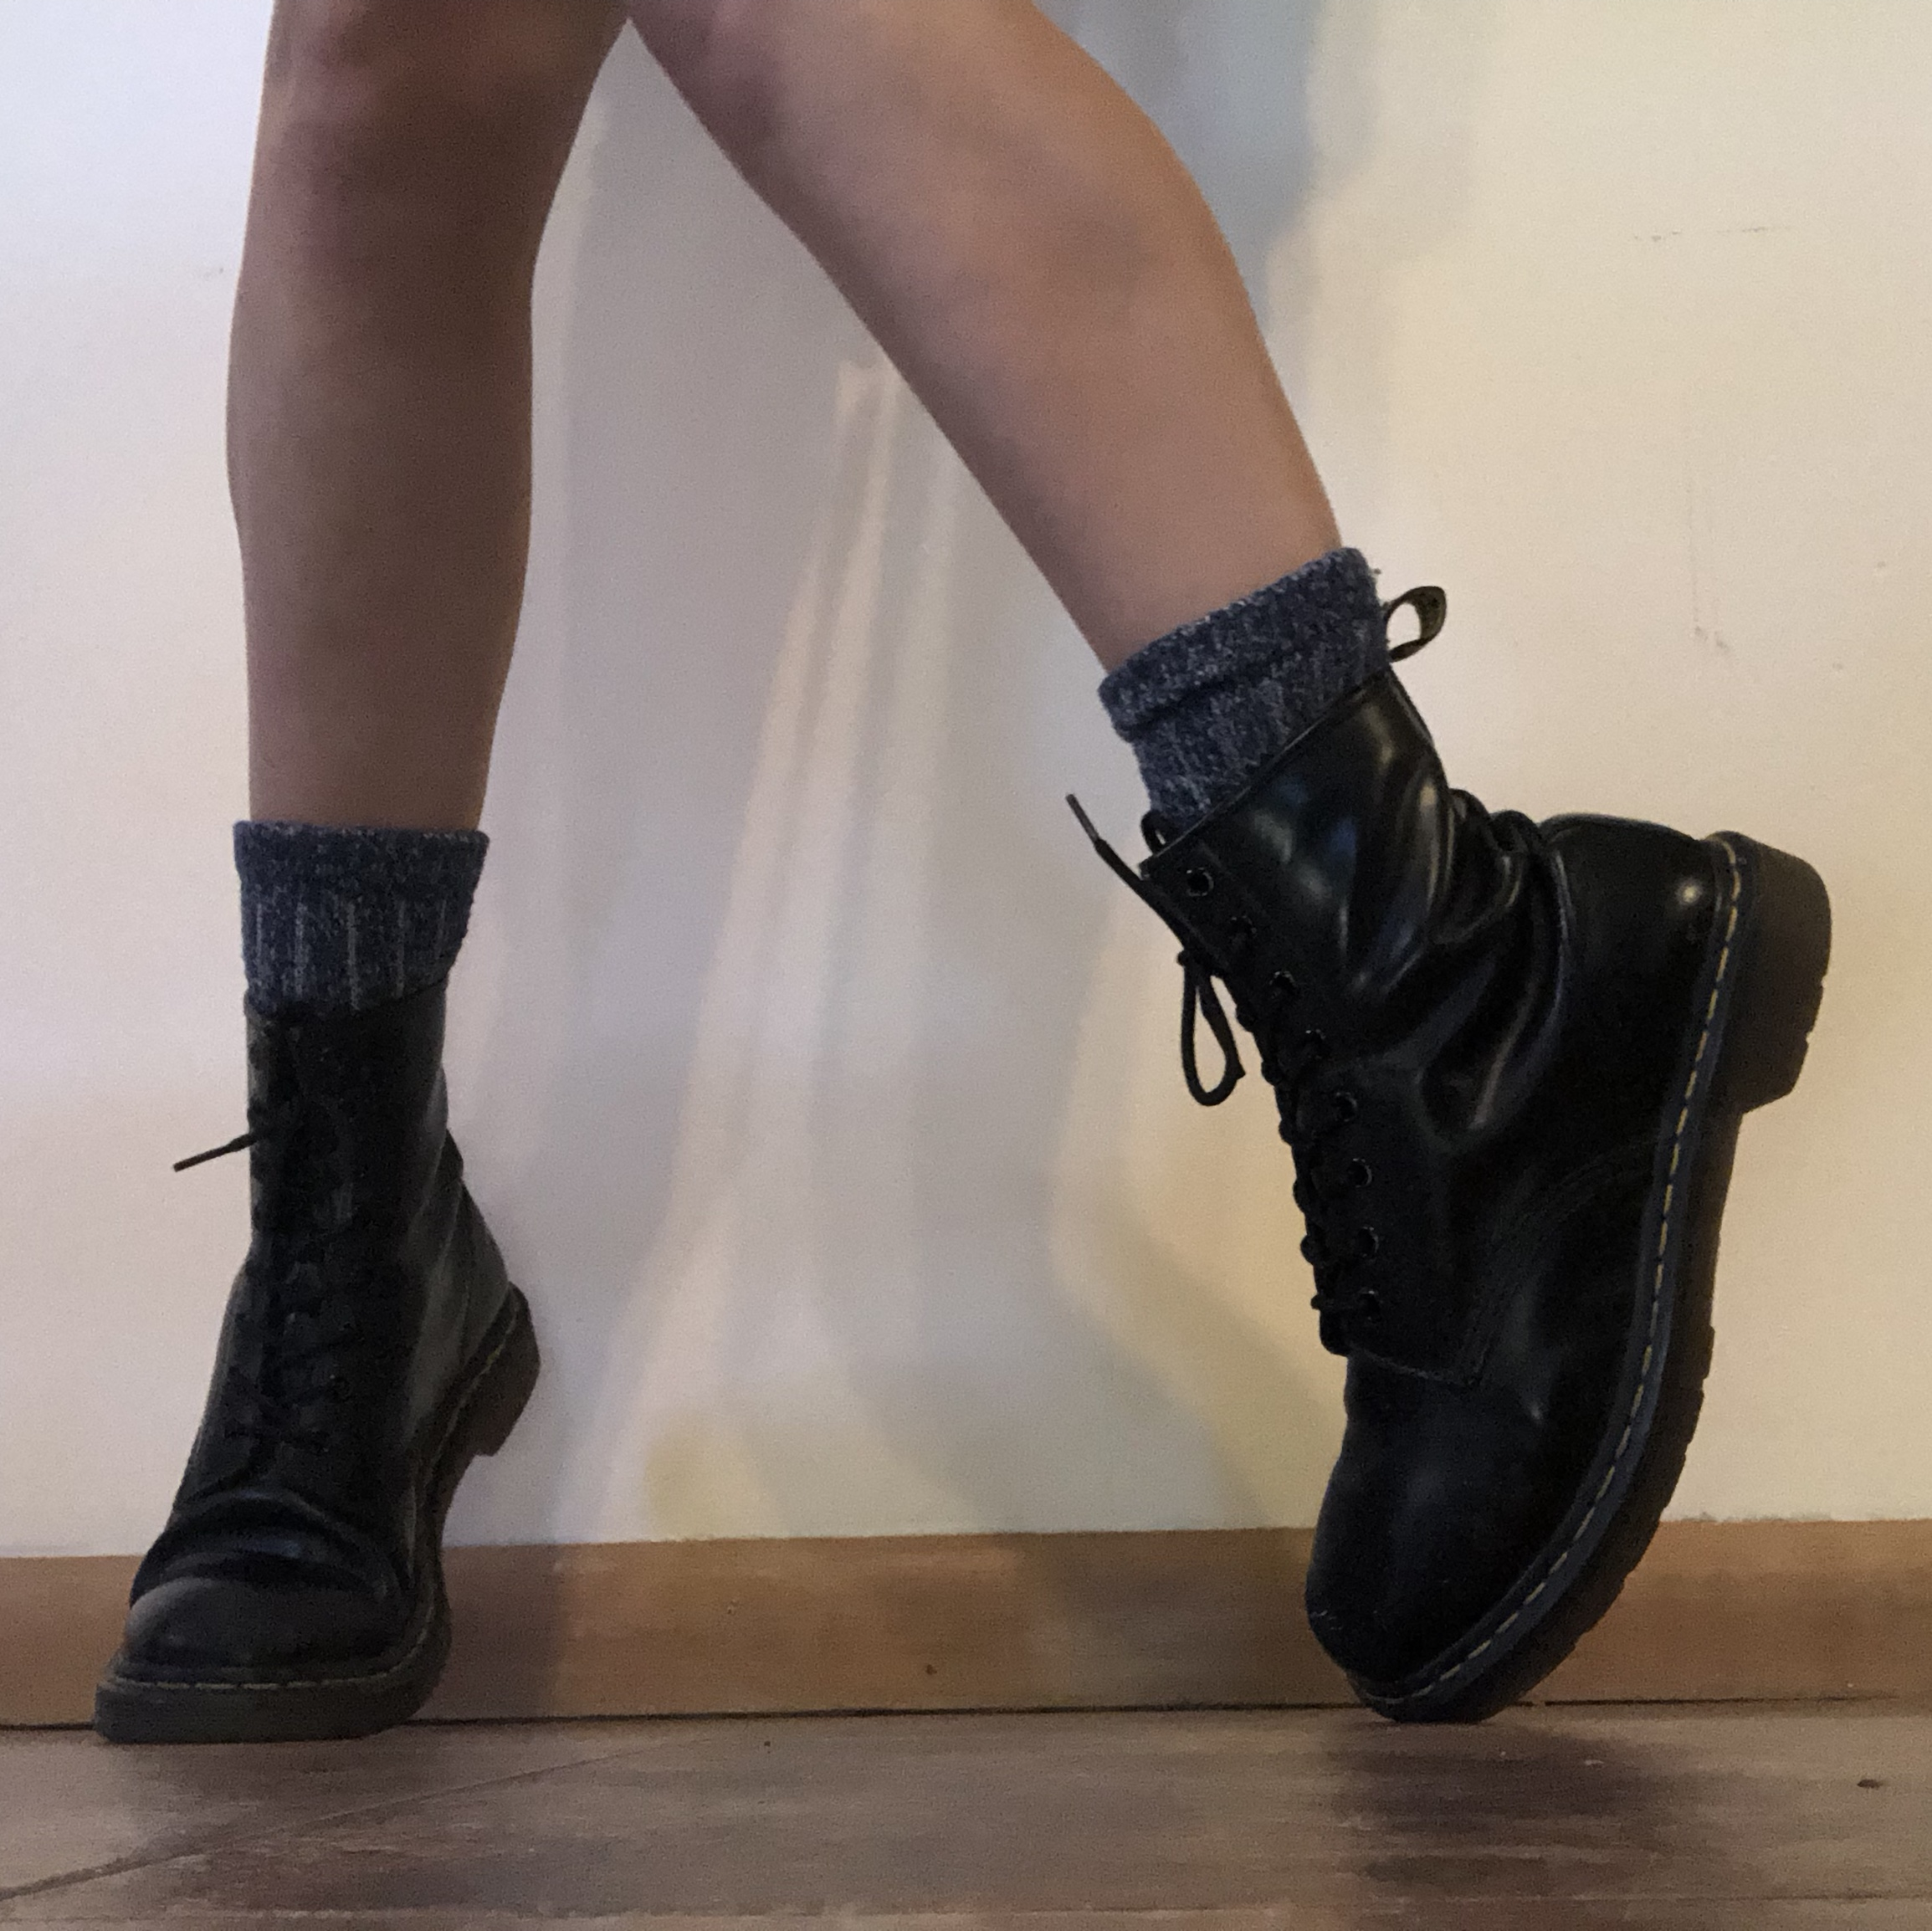 Adorable black glossy doc martens. The